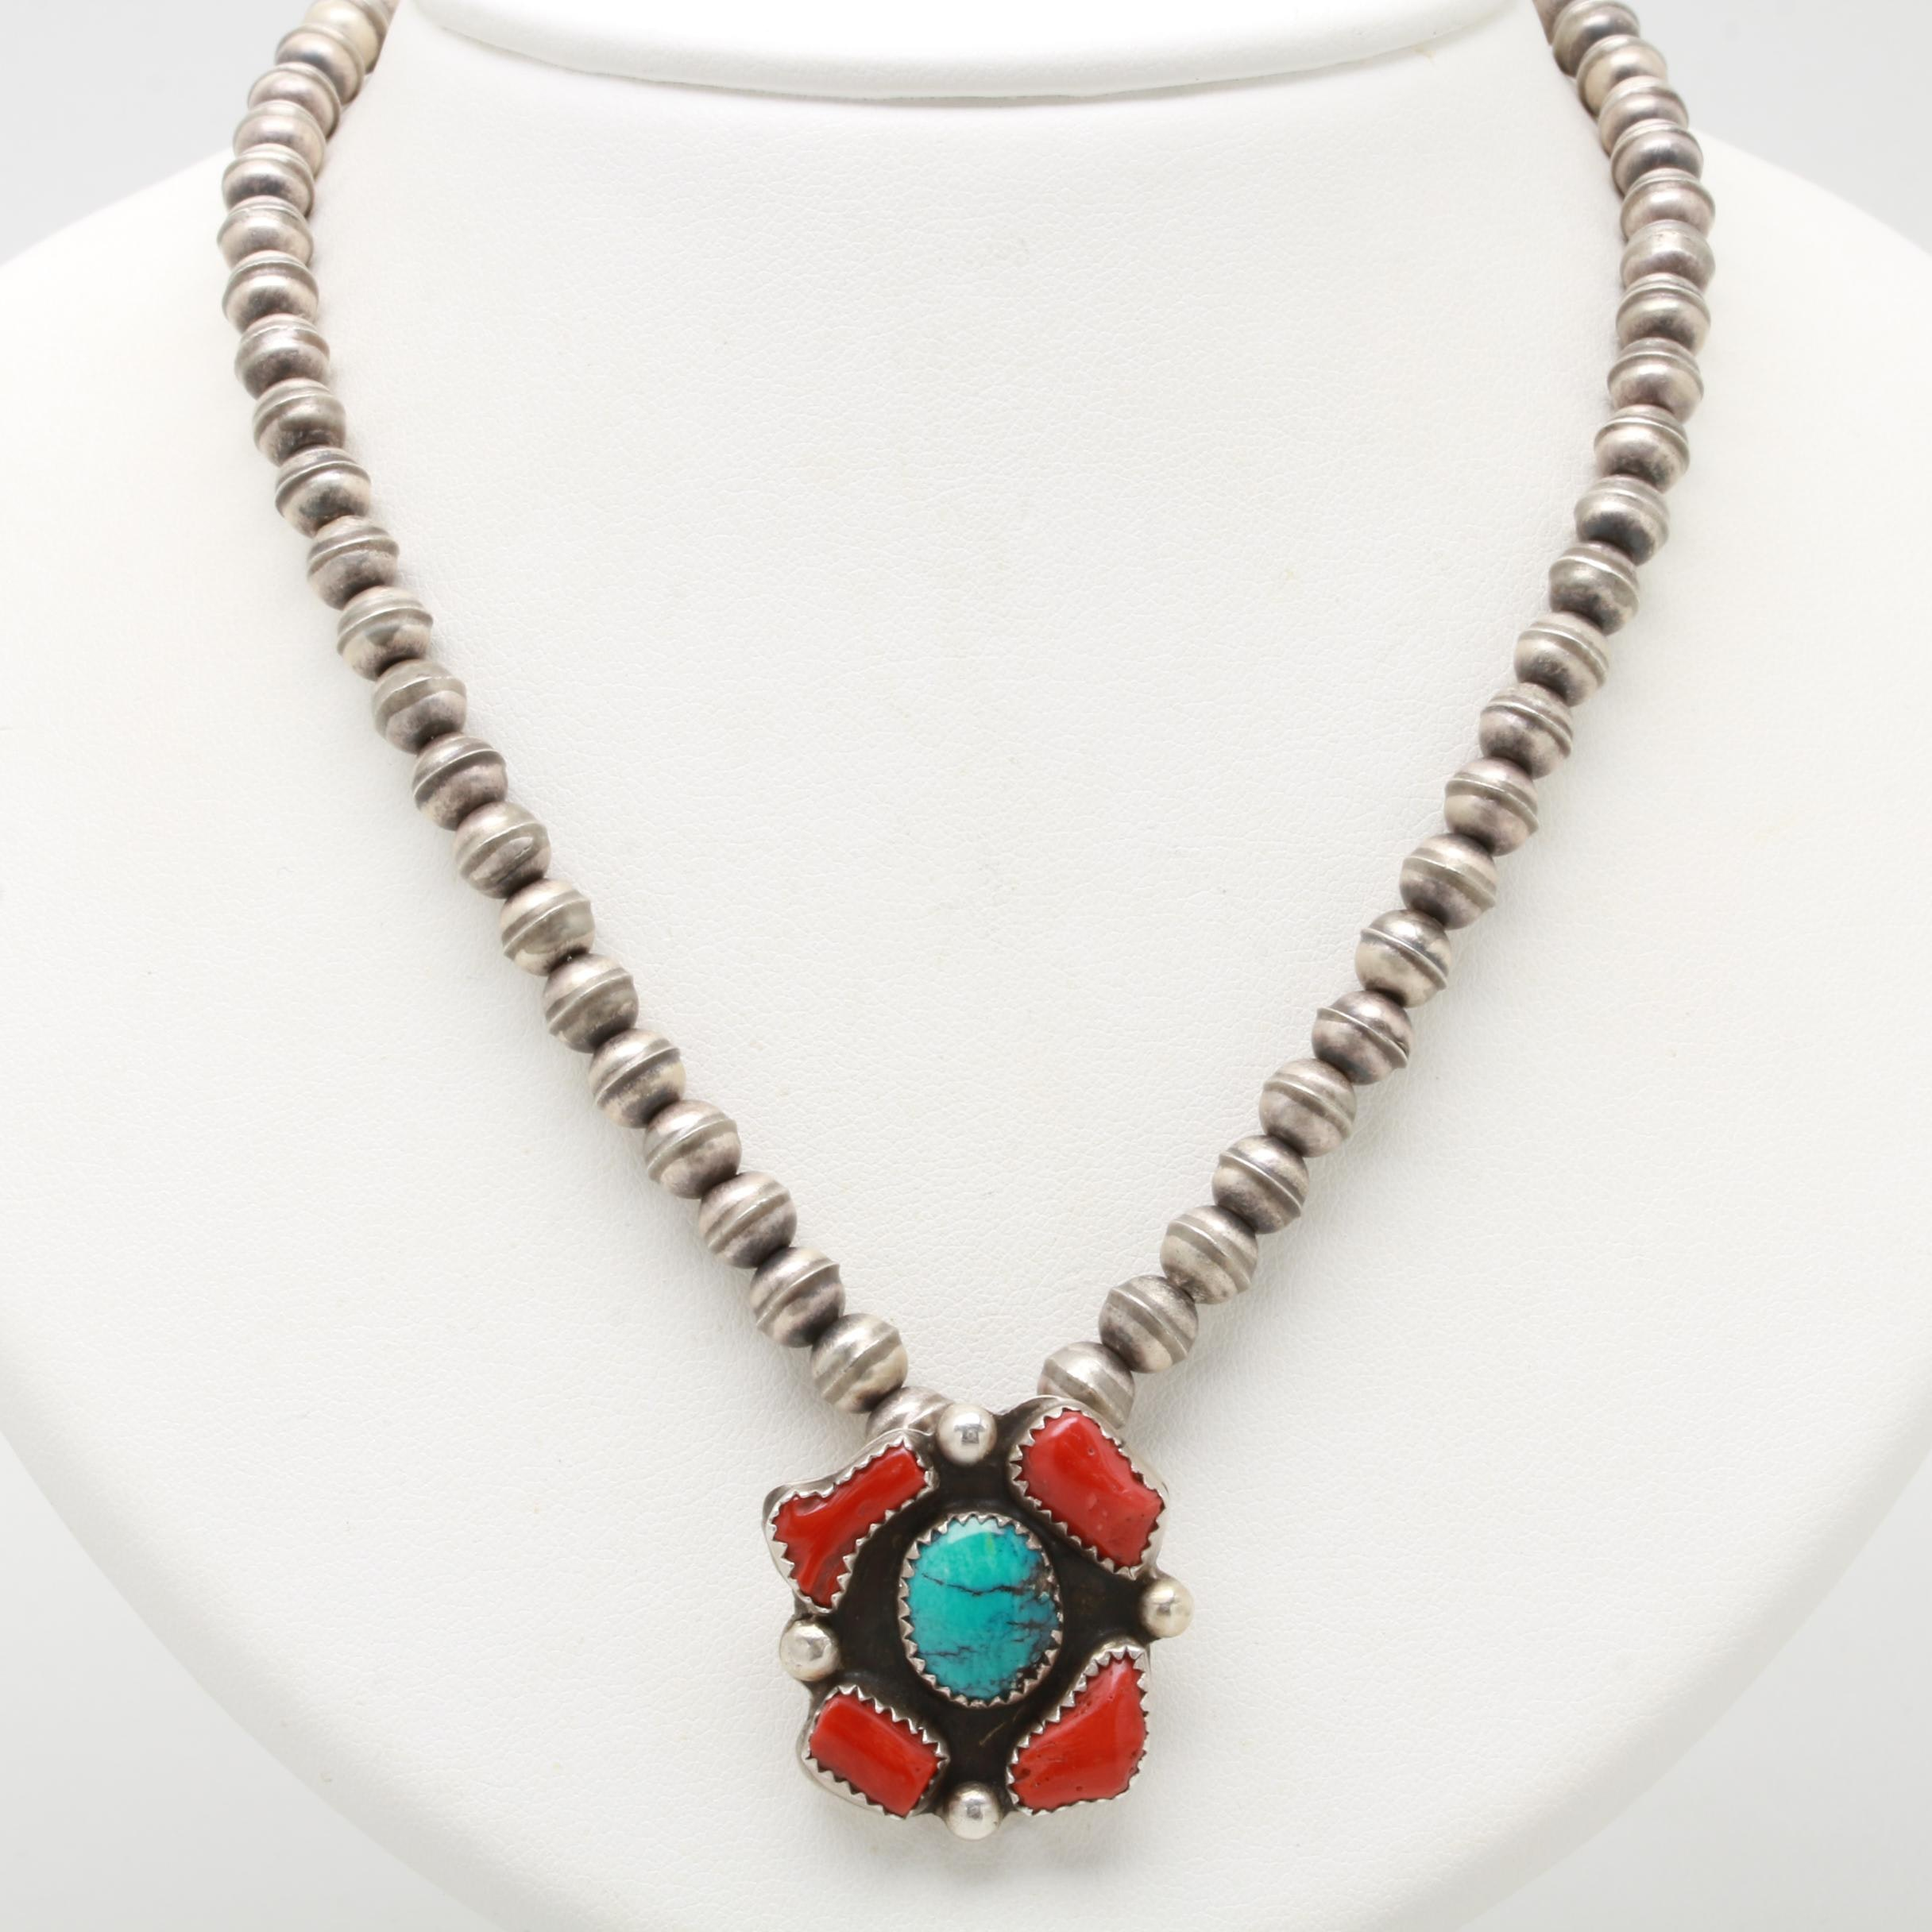 Victor Hicks Navajo Diné Sterling Silver Turquoise and Coral Pendant Necklace